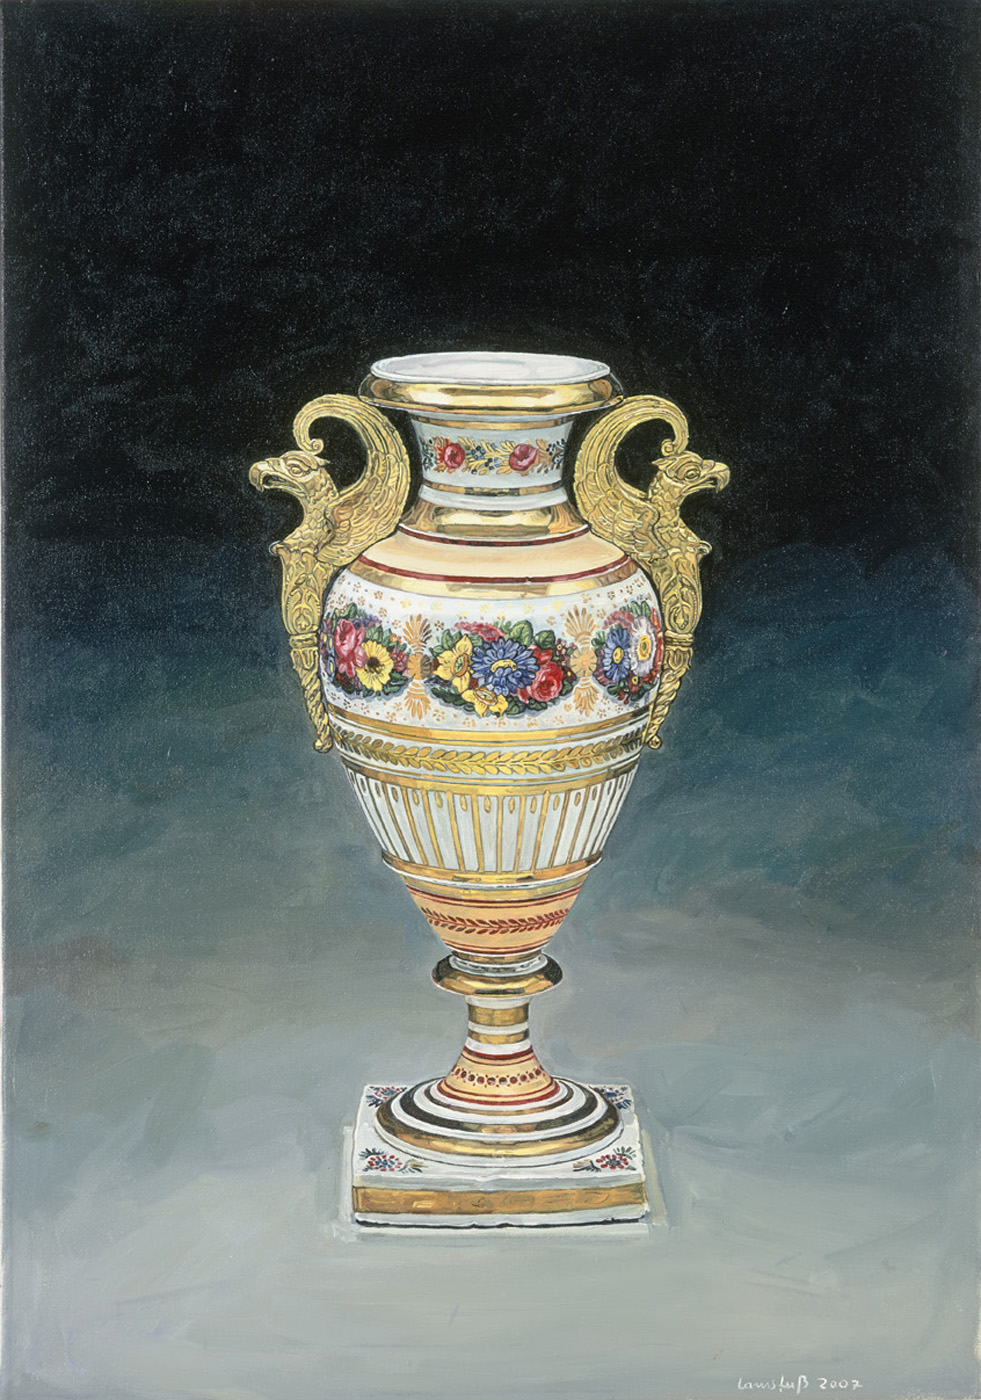 Ulrich Lamsfuss   William Tucker, Vase 1882, Die Kunst der USA, #1 , 2007 oil on canvas 39.4 x 27.6 inches 100 x 70 cm